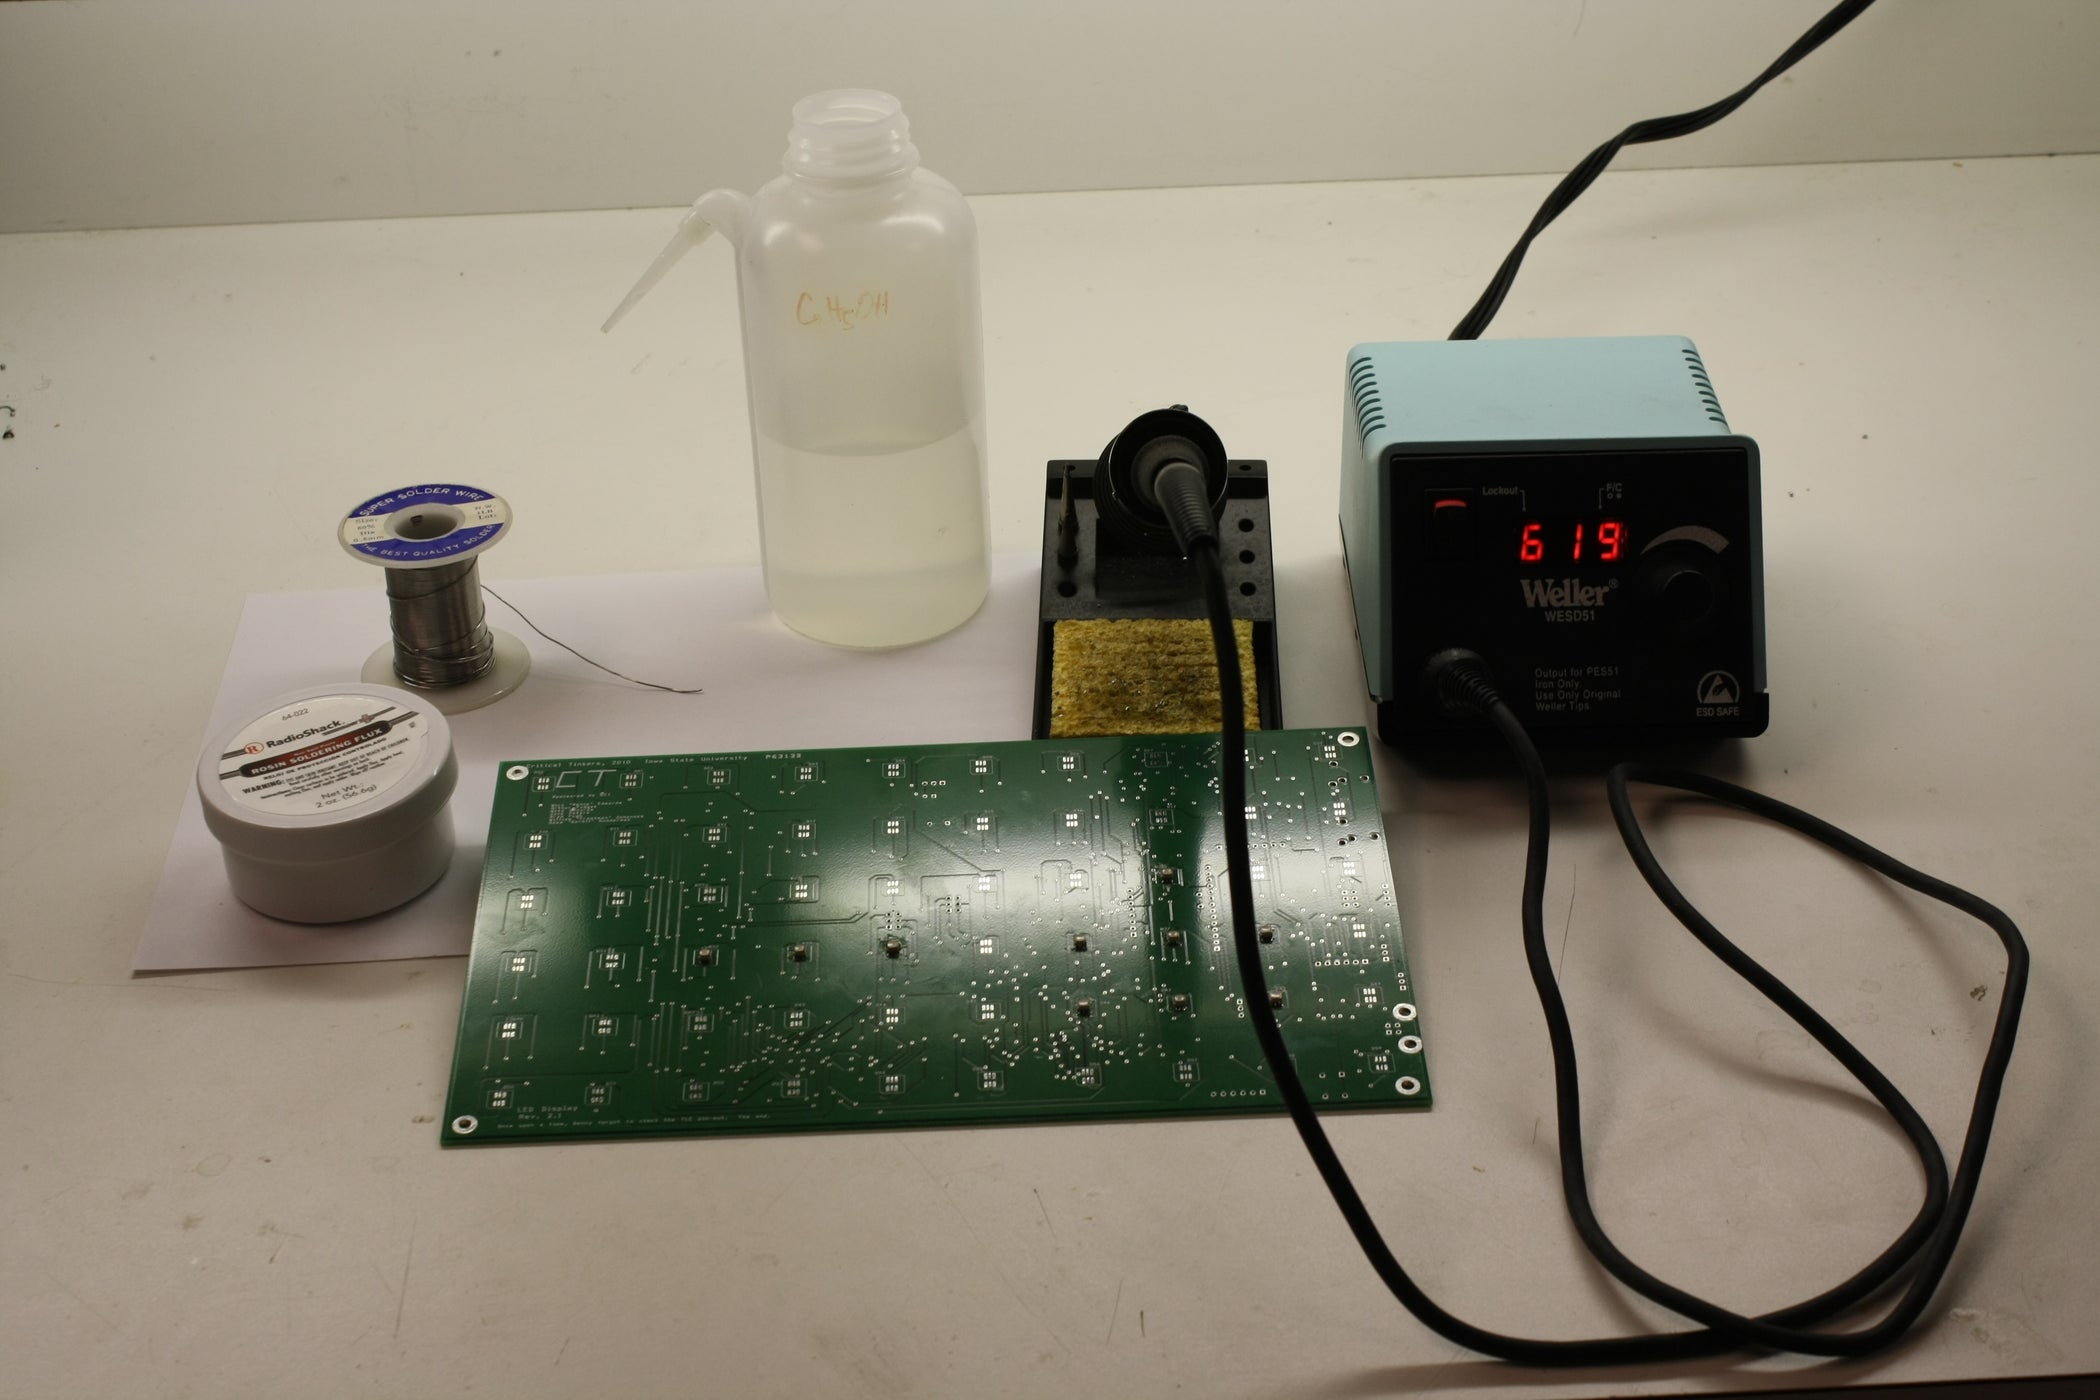 Soldering And Desoldering Surface Mount Components 10 Steps Pcb Repair Materials Tools Printed Circuit Board